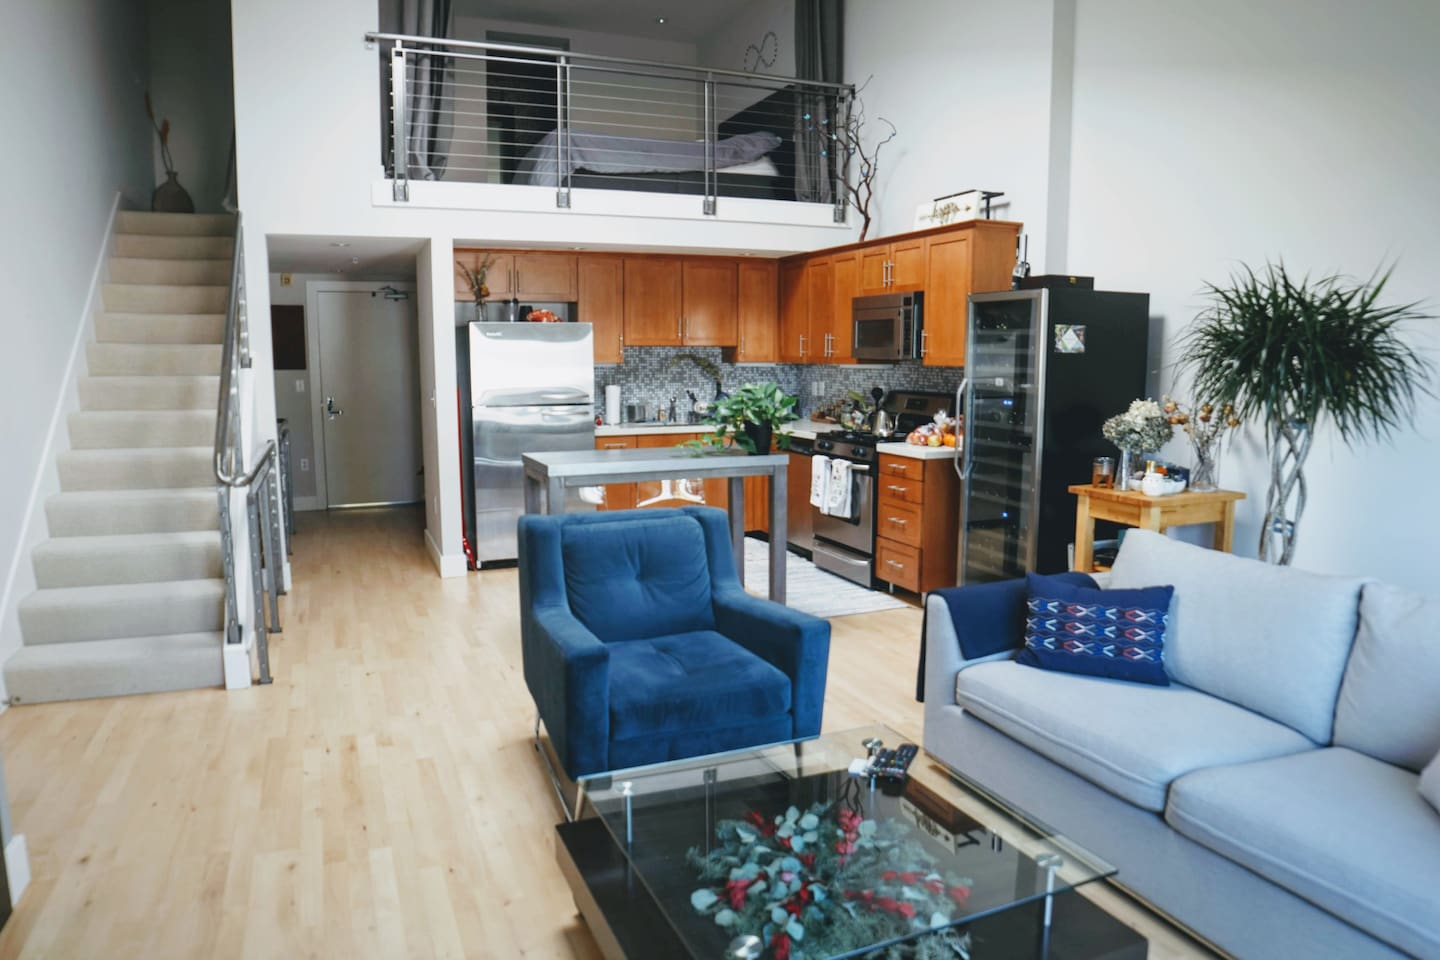 Loft space (private), kitchen/living (shared)